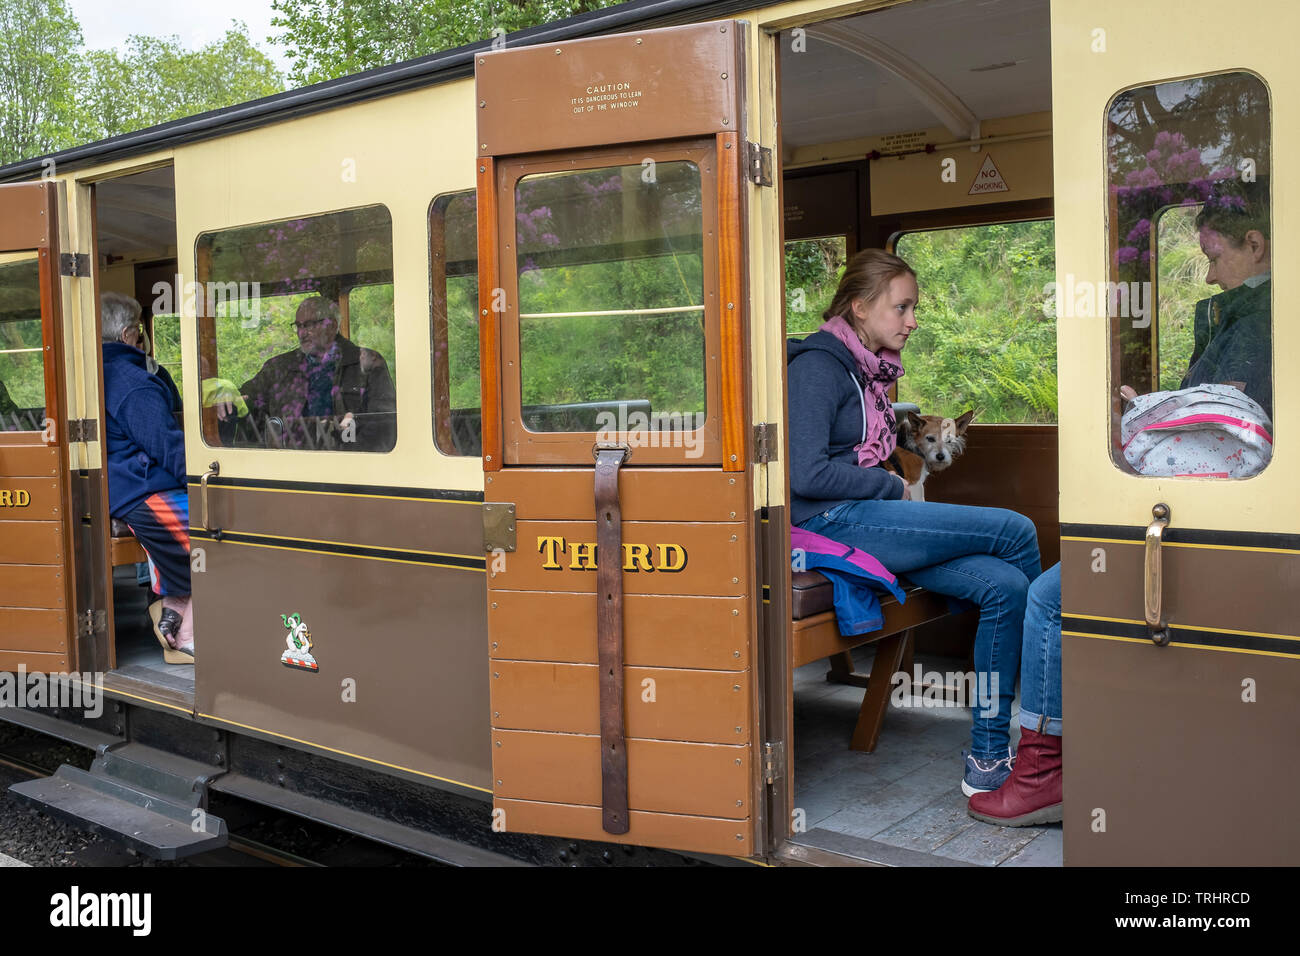 Tourists and dog, doggy,Third Class carriages on platform at Devil's Bridge Station,Vale of Rheidol Steam Railway, near Abertsywyth, Ceredigion, Wales - Stock Image